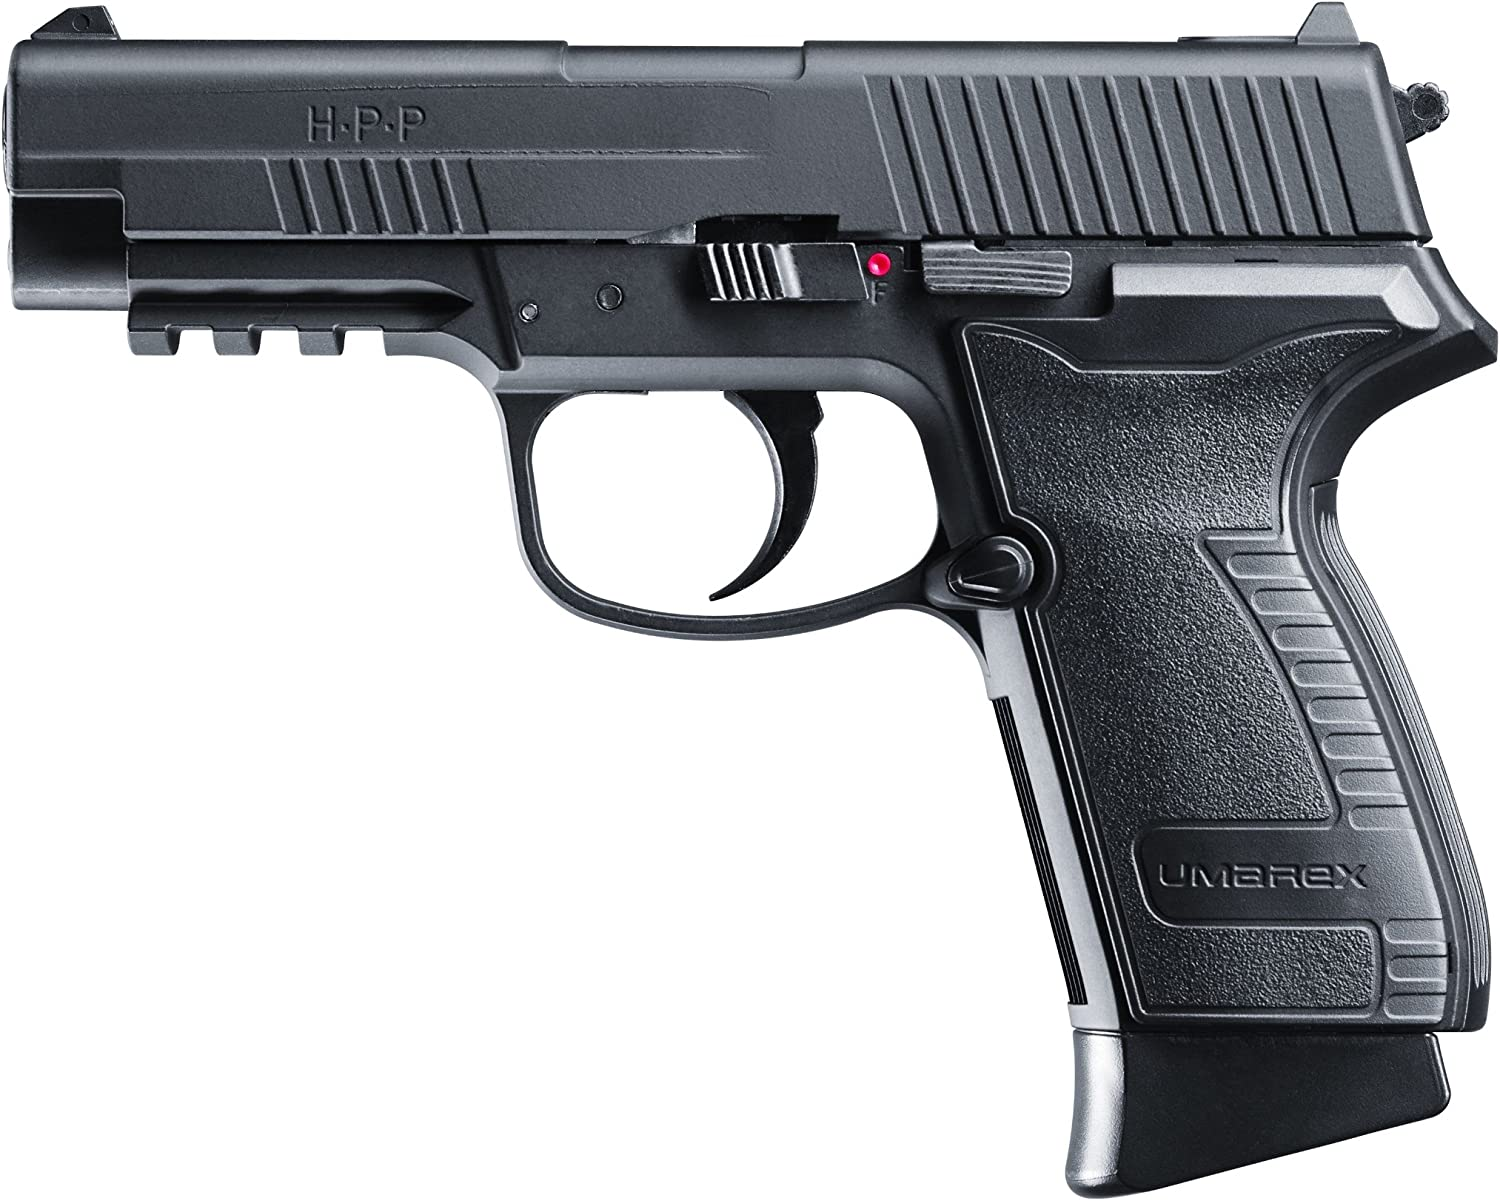 Pistola Umarex HPP High Power Co2 - 4,5 mm